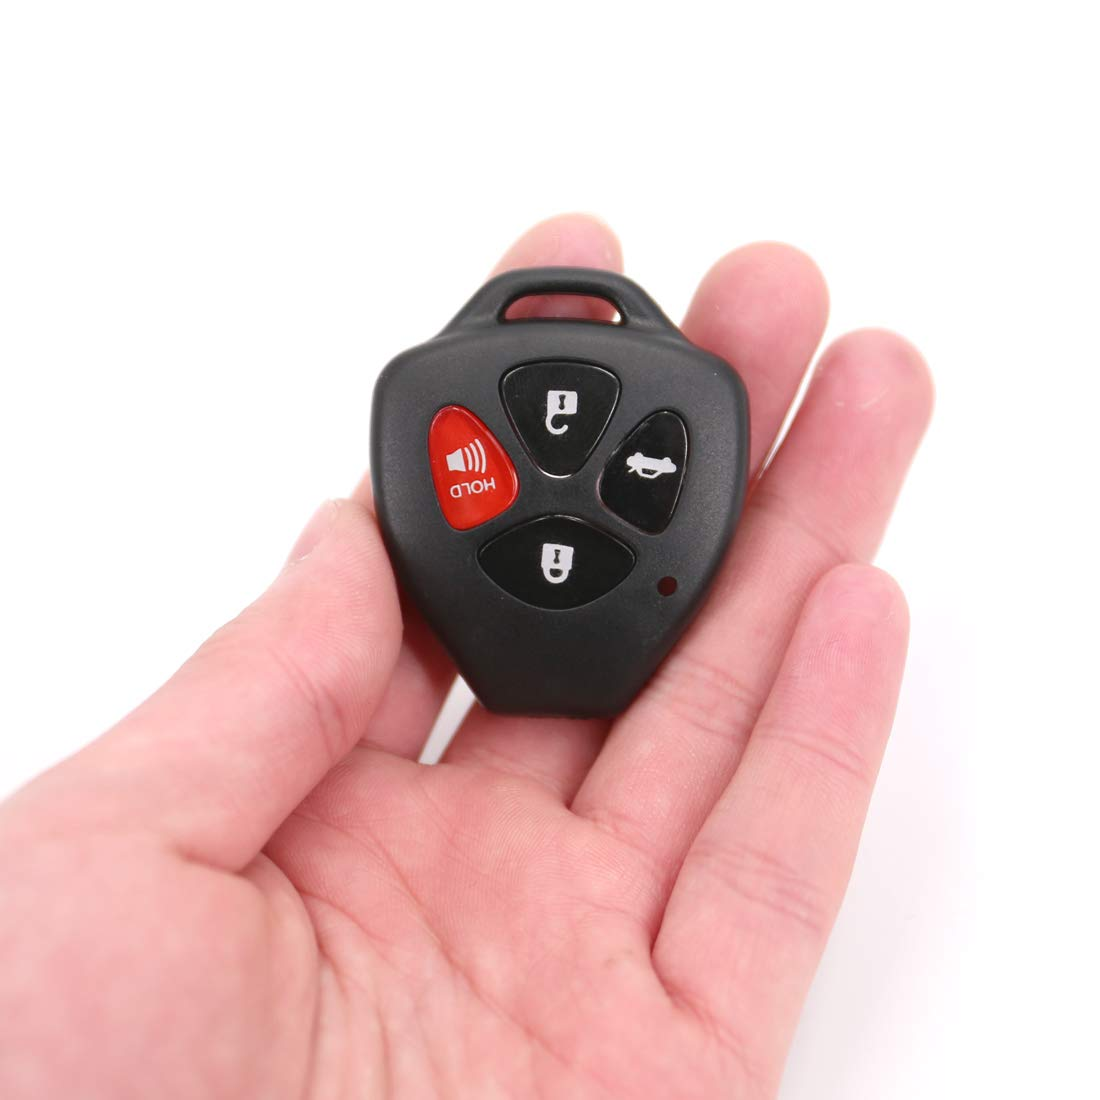 Only Casing 2009-2014 Venza 1 Pack UTSAUTO Key Fob Shell Case /& Pad Cover Housing HYQ12BBY GQ4-29T Fits Toyota 2008-2013 Avalon 2007-2011 Camry 2008-2013 Corolla